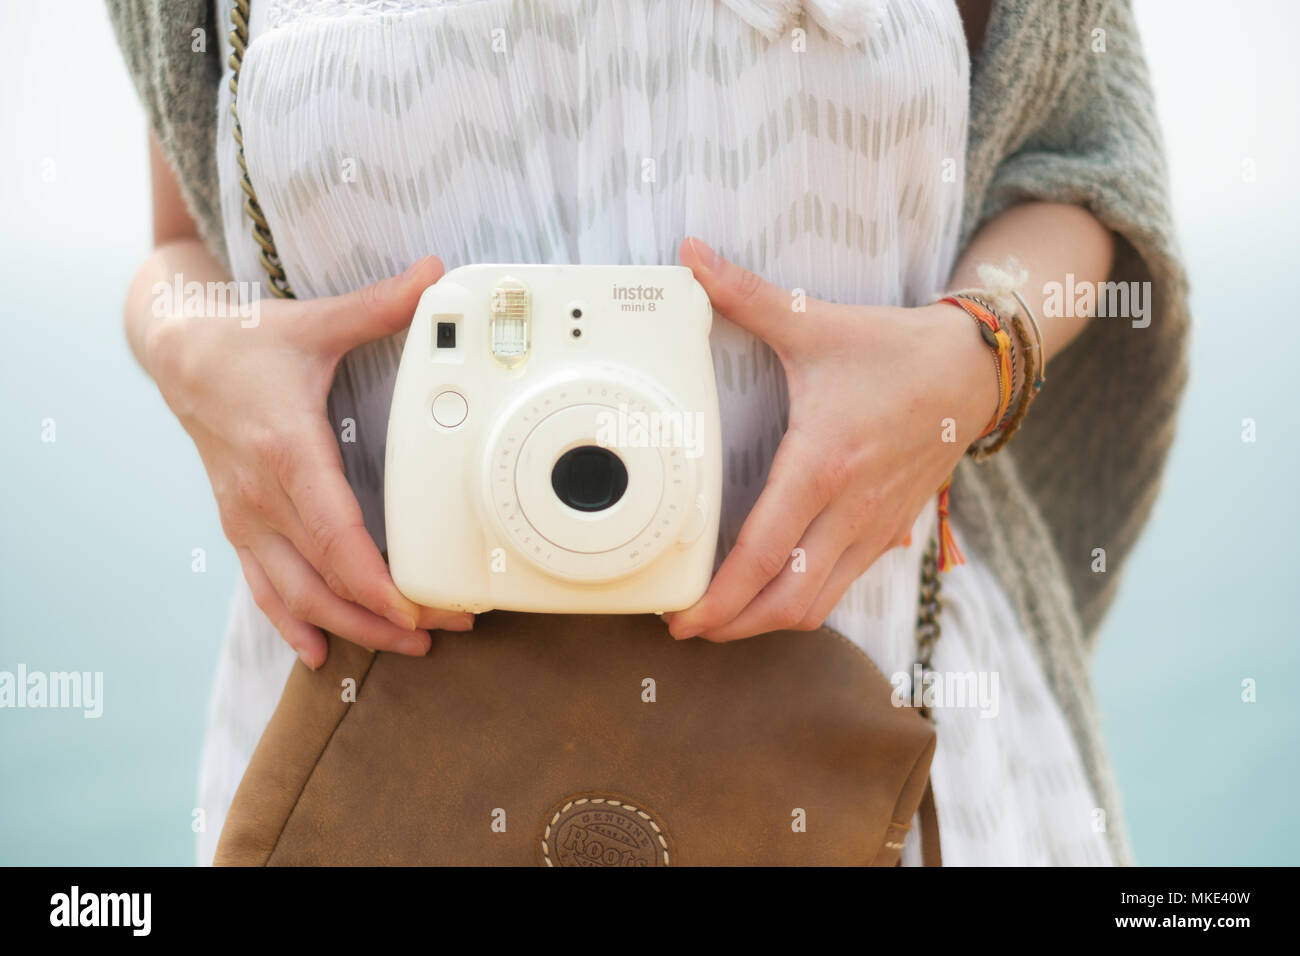 Making memories with instax camera - Stock Image